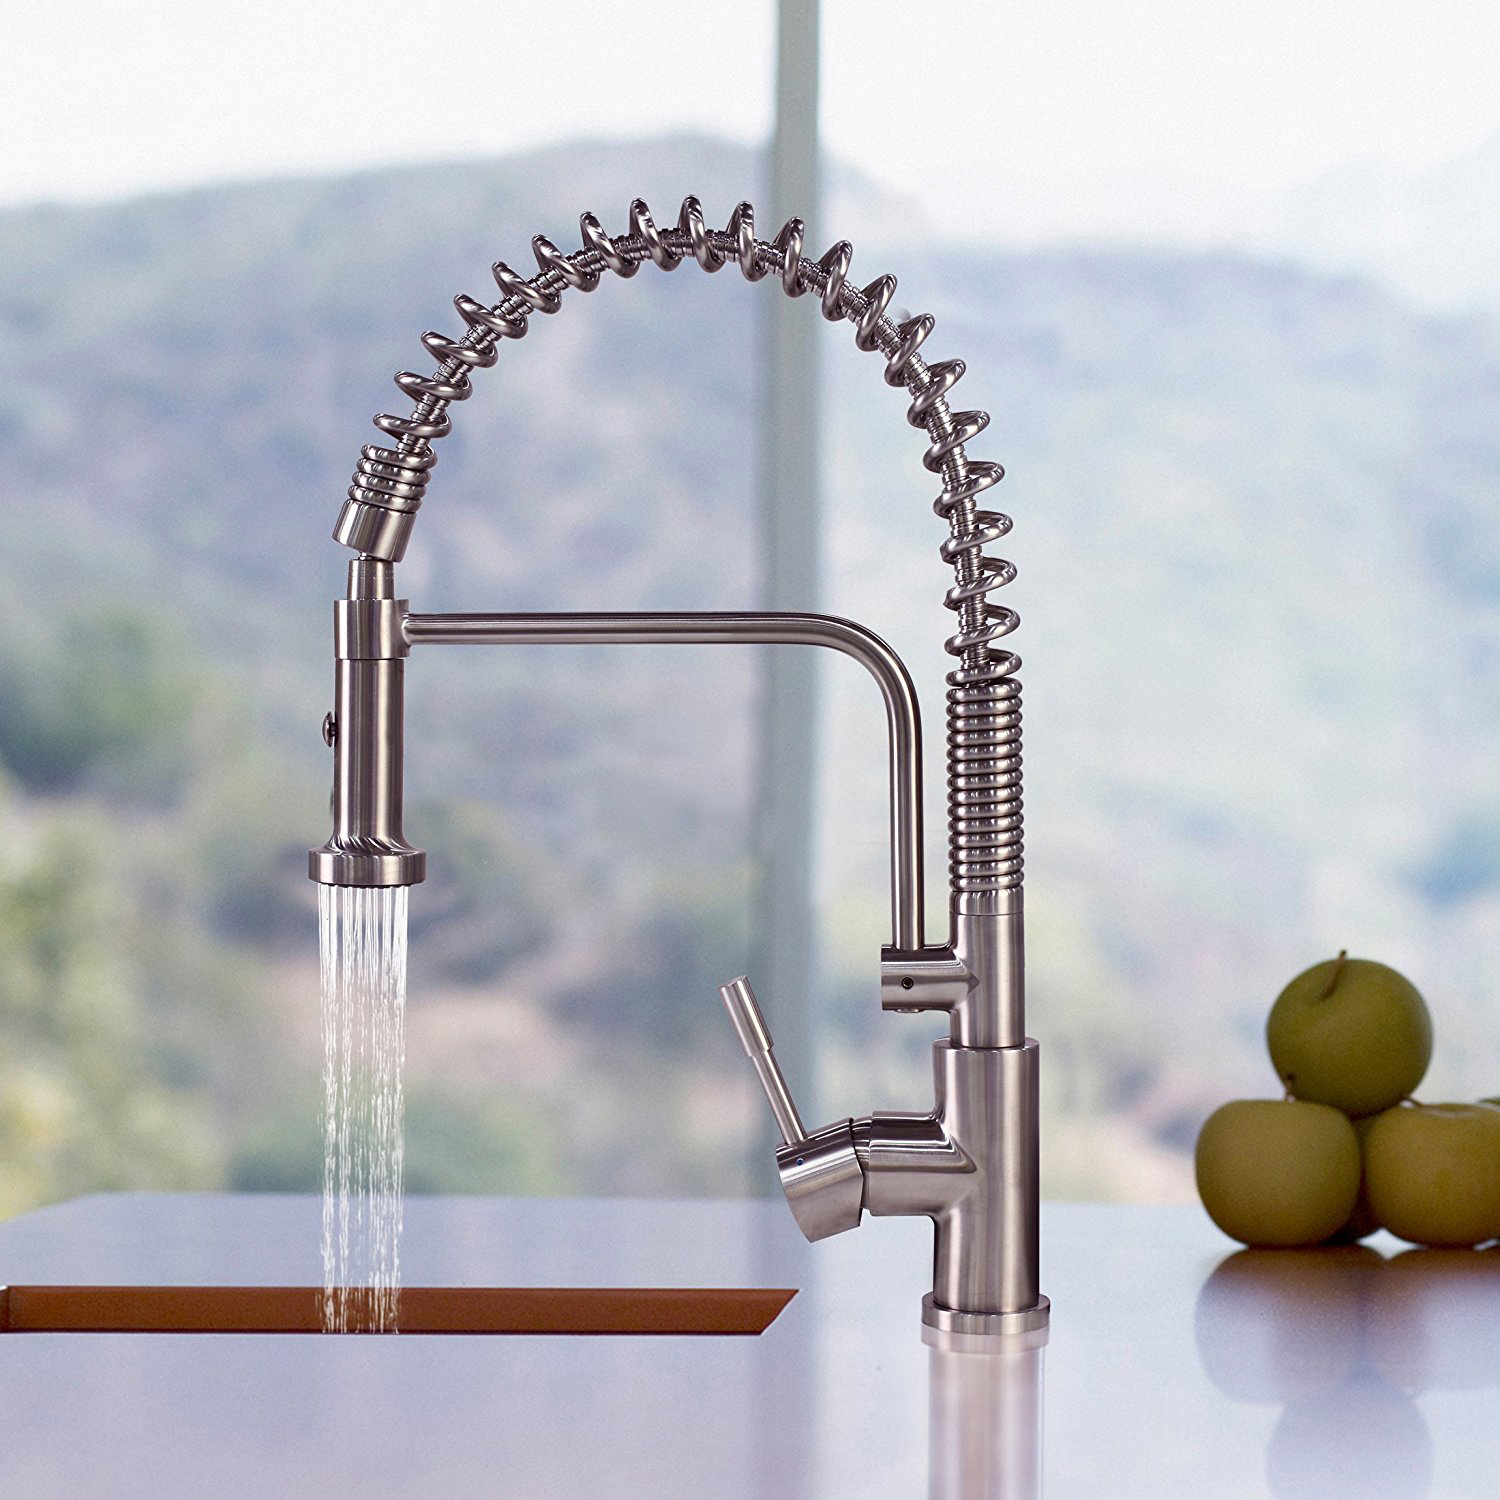 6 Best Touchless Kitchen Faucets Reviews & Buying Guide 2018